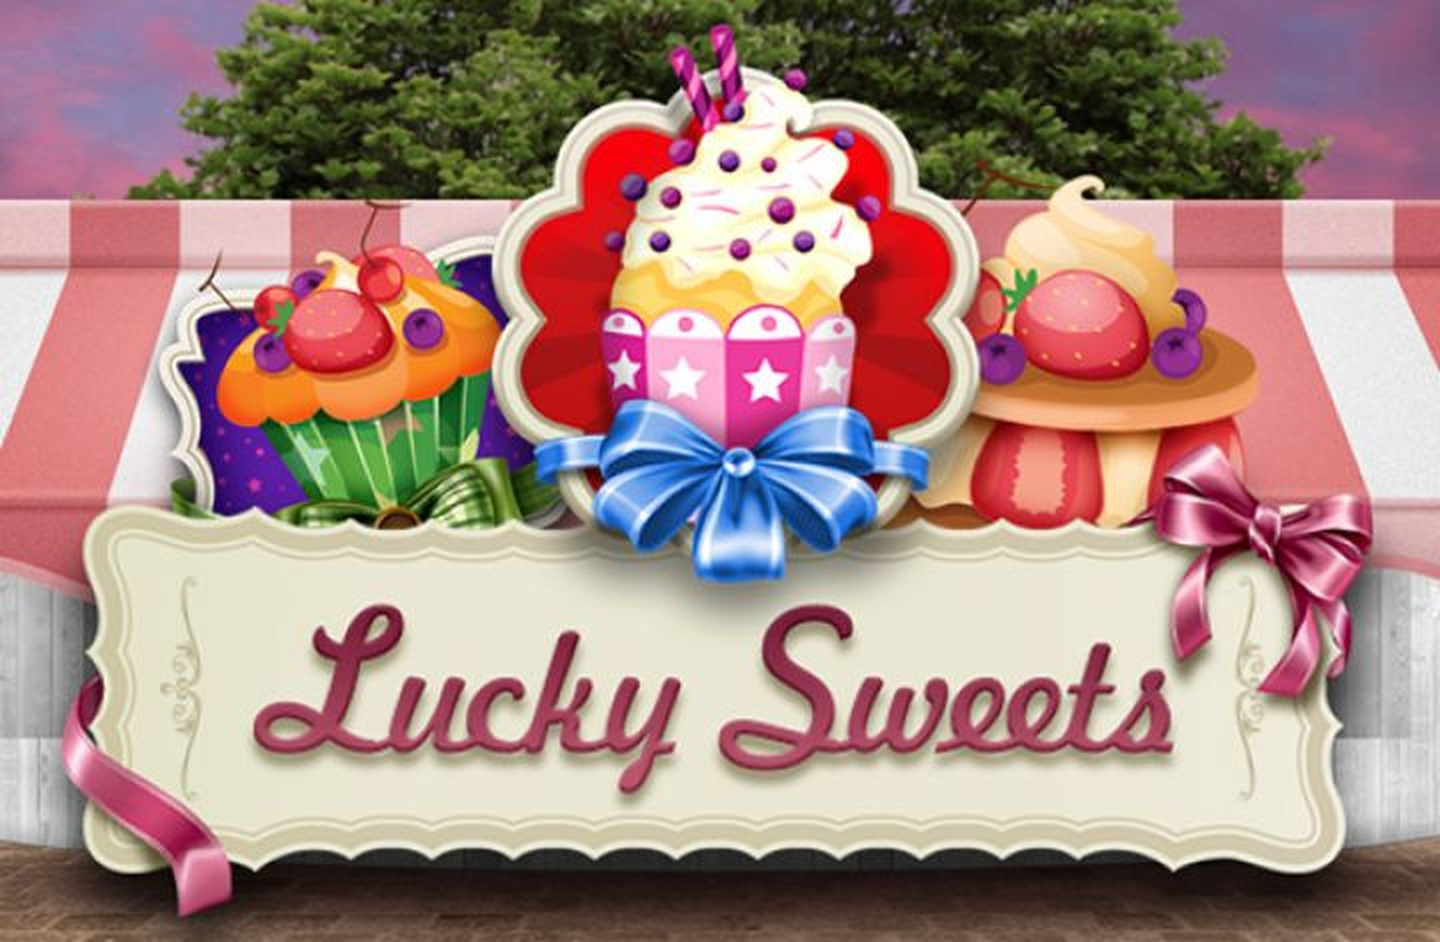 The Lucky Sweets Online Slot Demo Game by BGAMING